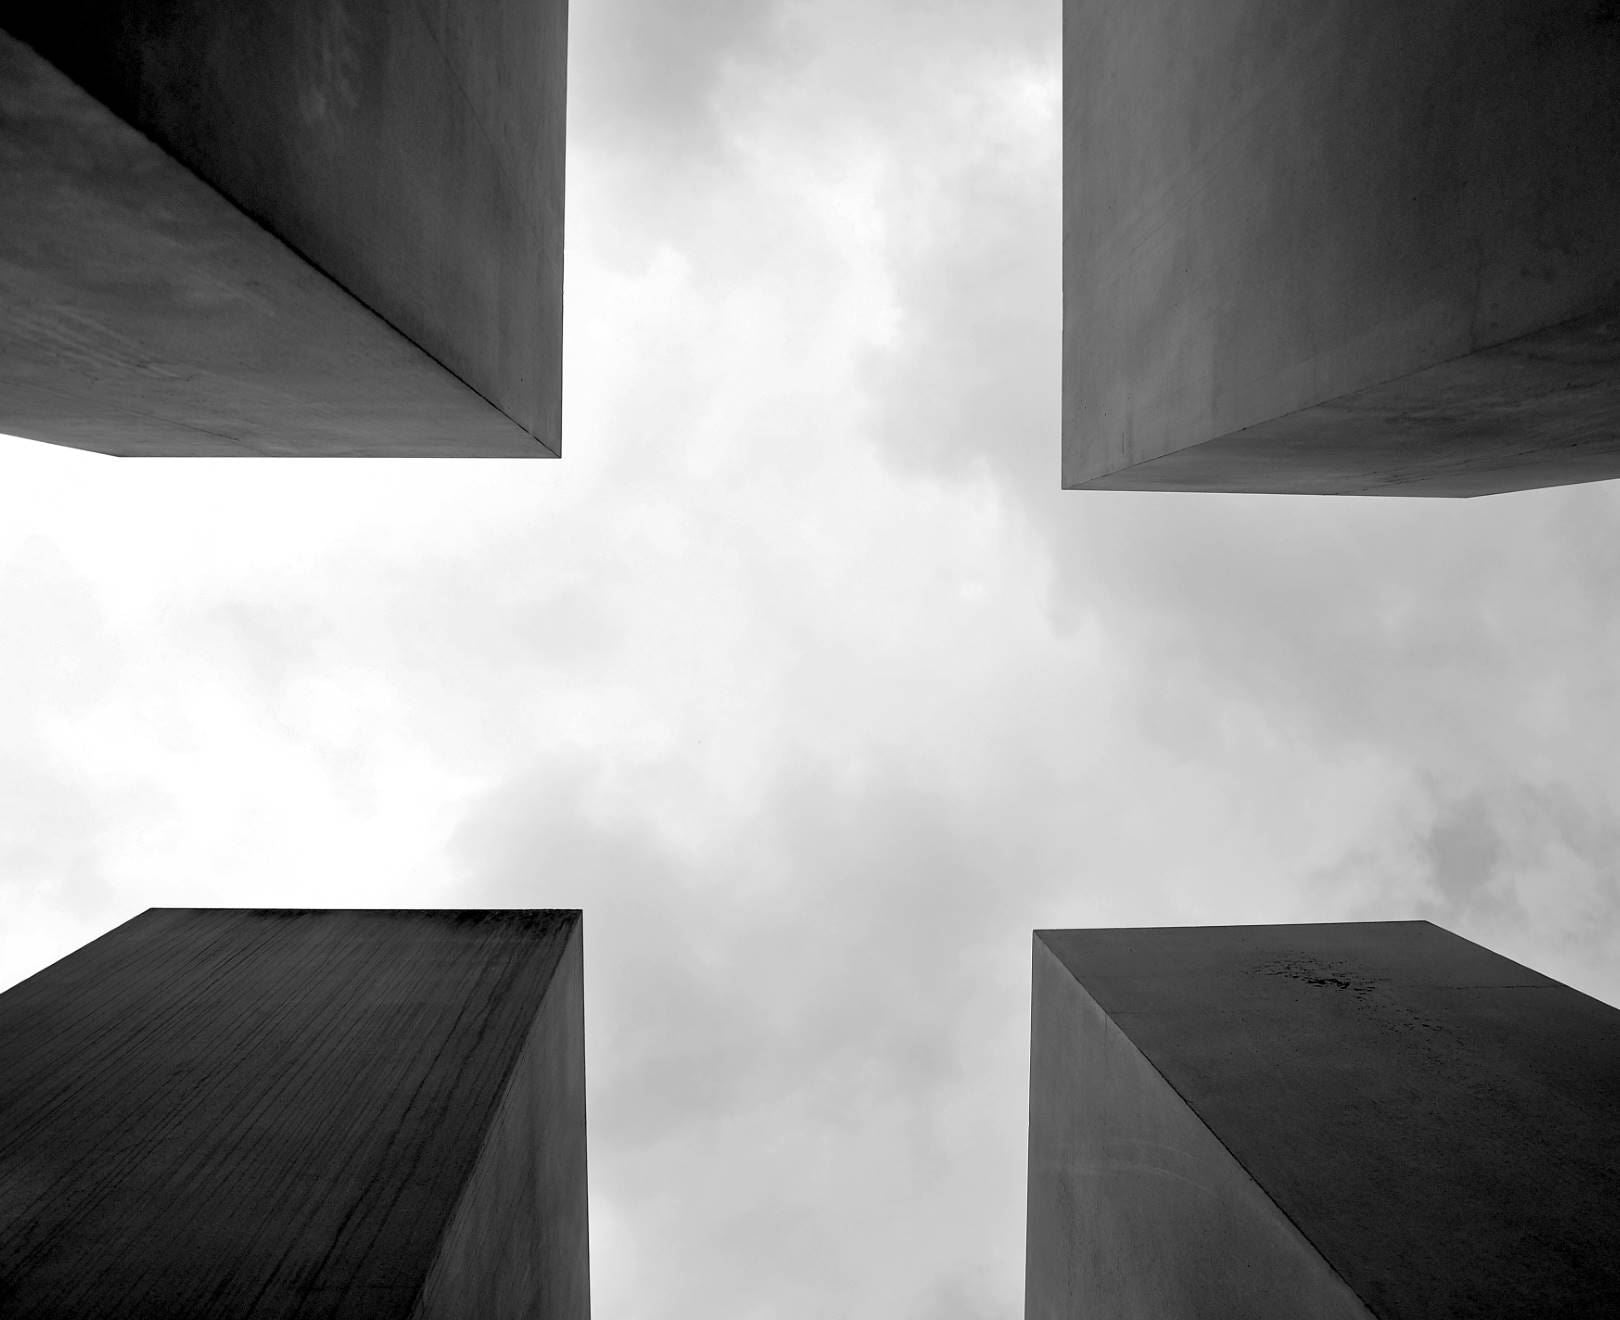 Four Concrete Blocks